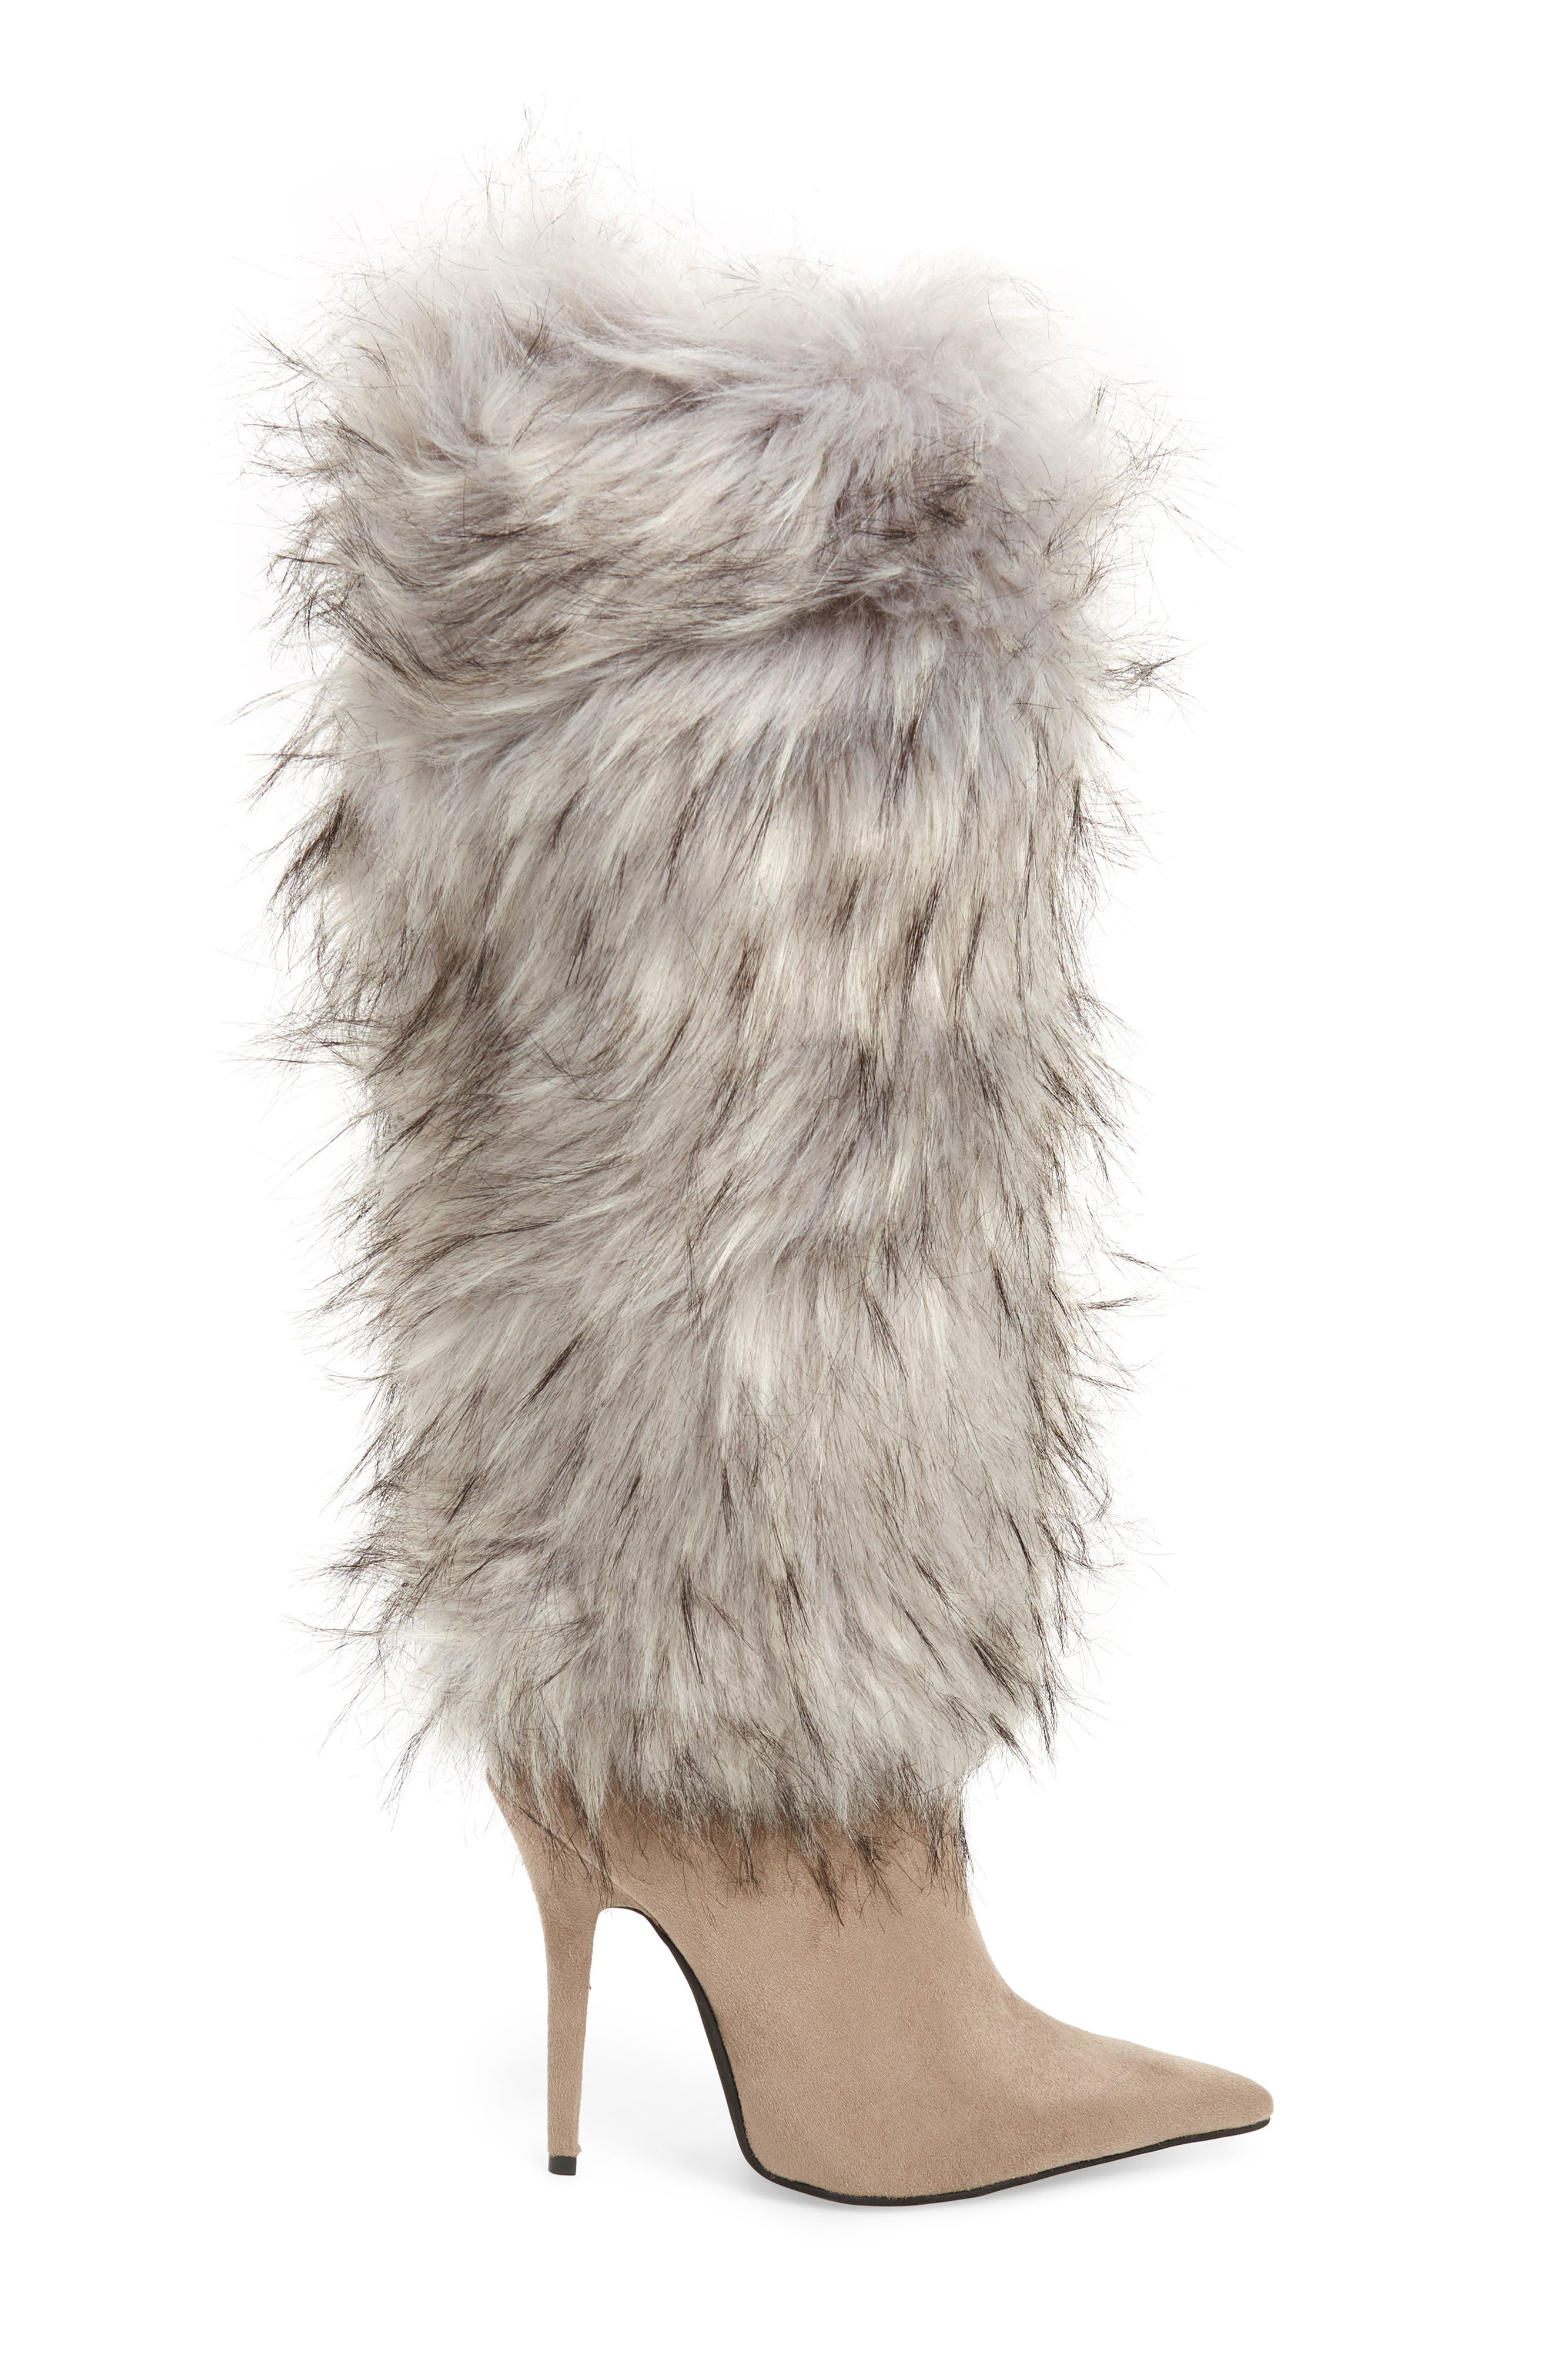 Vedet Faux Fur Knee High Boot,                             Alternate thumbnail 3, color,                             DARK TAUPE SUEDE